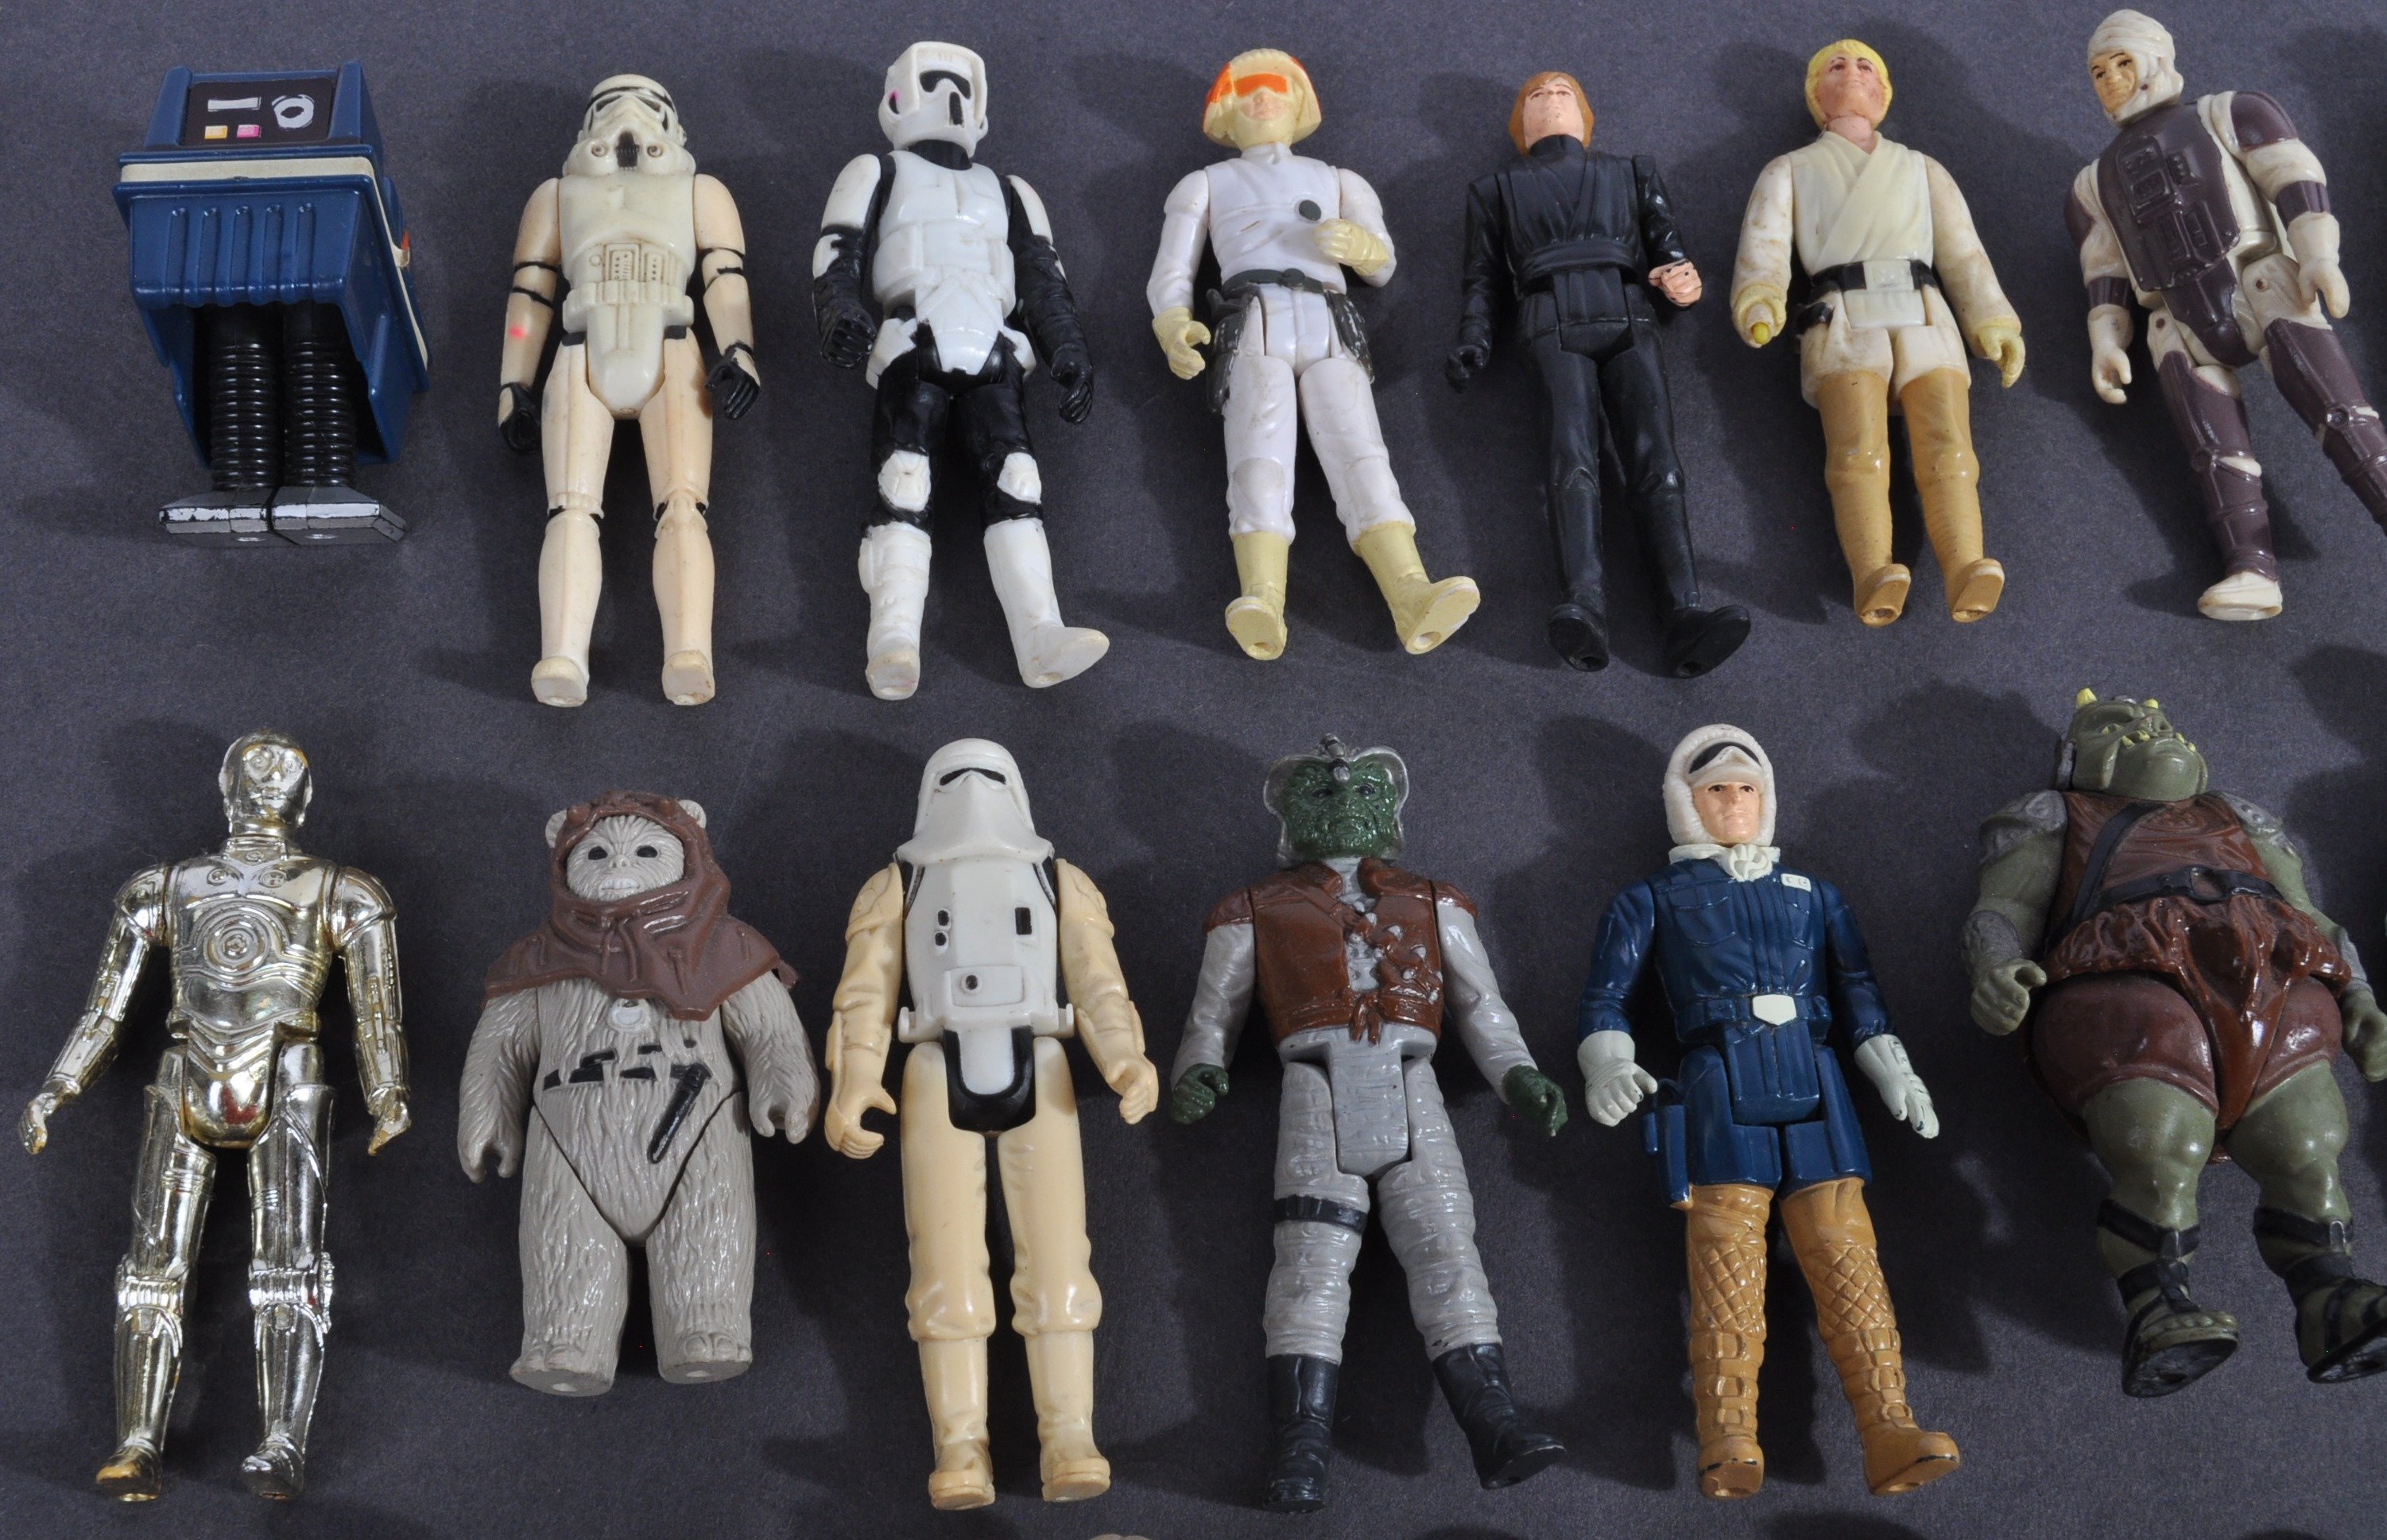 STAR WARS - COLLECTION OF VINTAGE KENNER / PALITOY ACTION FIGURES - Image 2 of 7